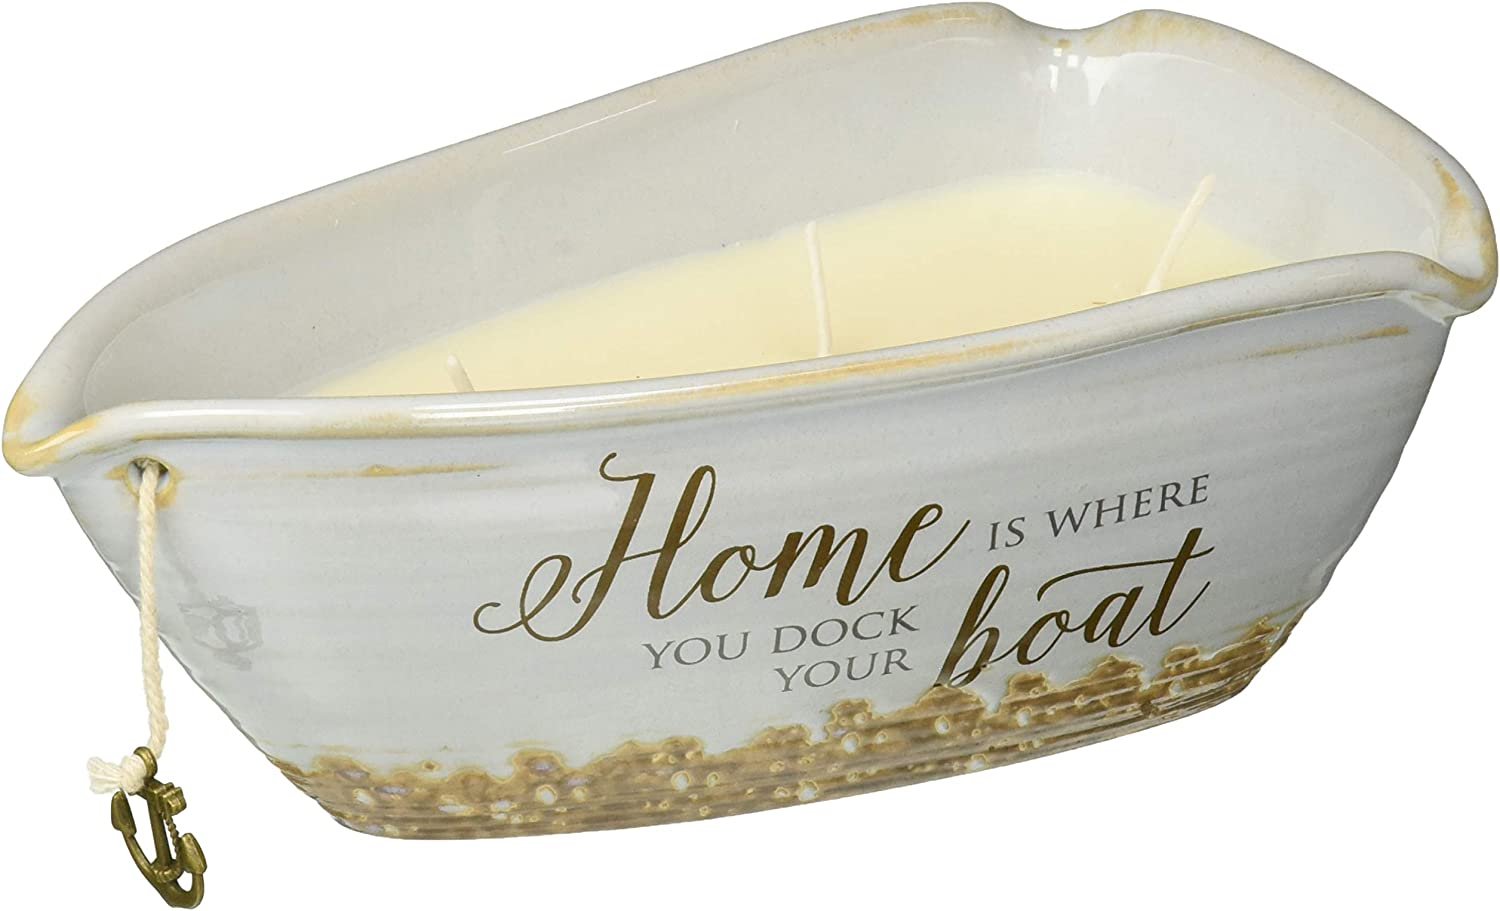 Beige 2.75 Inch Tall Pavilion Gift Company Lake Best Times-Ceramic Boat Shaped 3 Lead Free Triple Wick 10 oz Soy Wax Candle Scent Tranquility